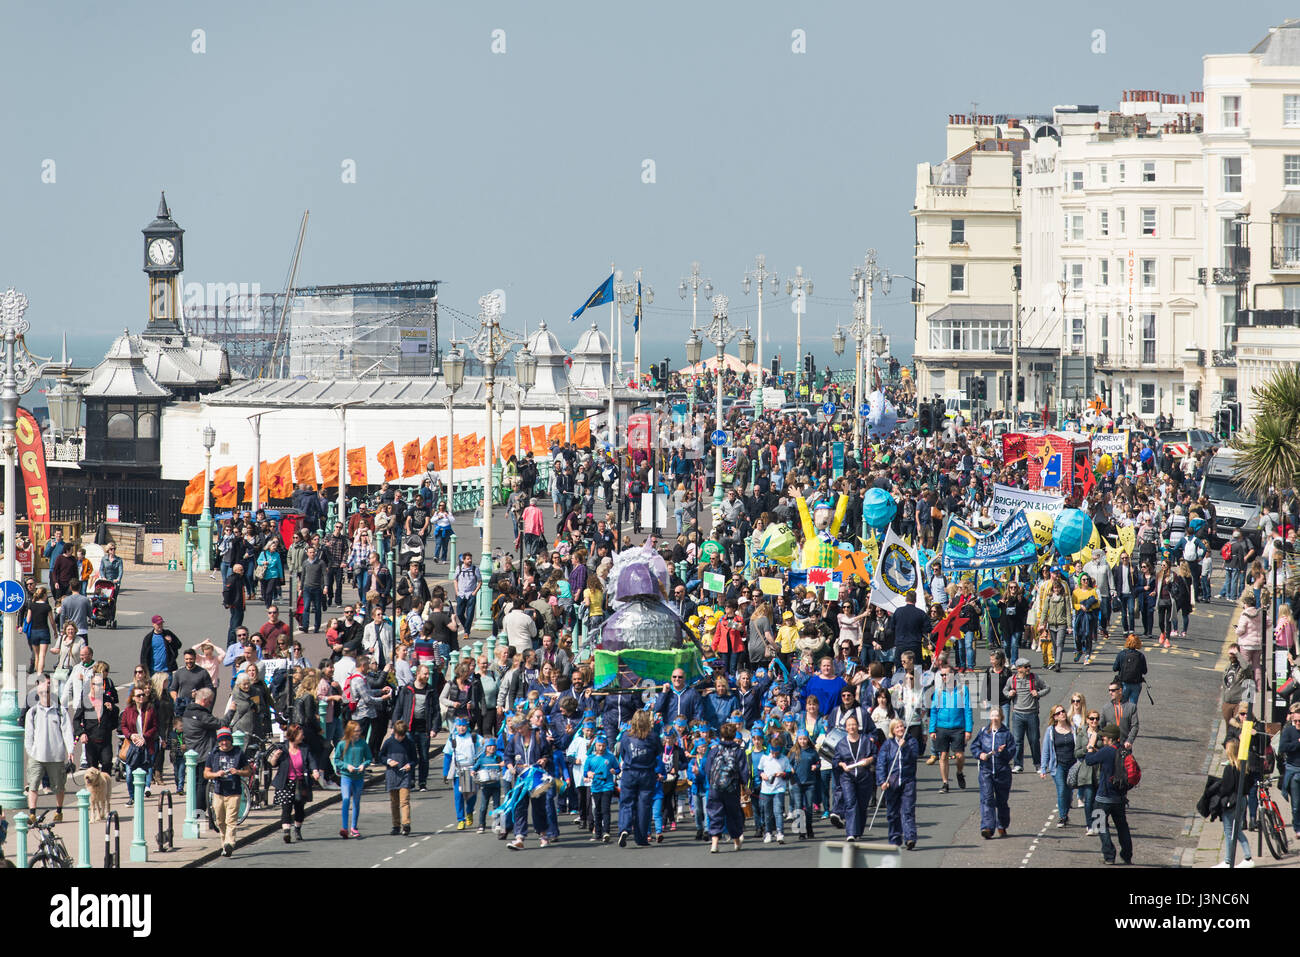 Brighton, England, Uk. 06th May, 2017. Brighton, East Sussex. 6th May 2017. Brighton's May Festival 2017 opens with bright sunshine and the annual traditional Children's Parade, a colourful and musical procession that's one of the biggest of its kind with over 5000 participants from over 80 schools. This year the theme is 'Poetry In Motion' to coincide with 2017's guest direction of the festival by poet and spoken word artist Kate Tempest. Credit: Francesca Moore/Alamy Live News Stock Photo